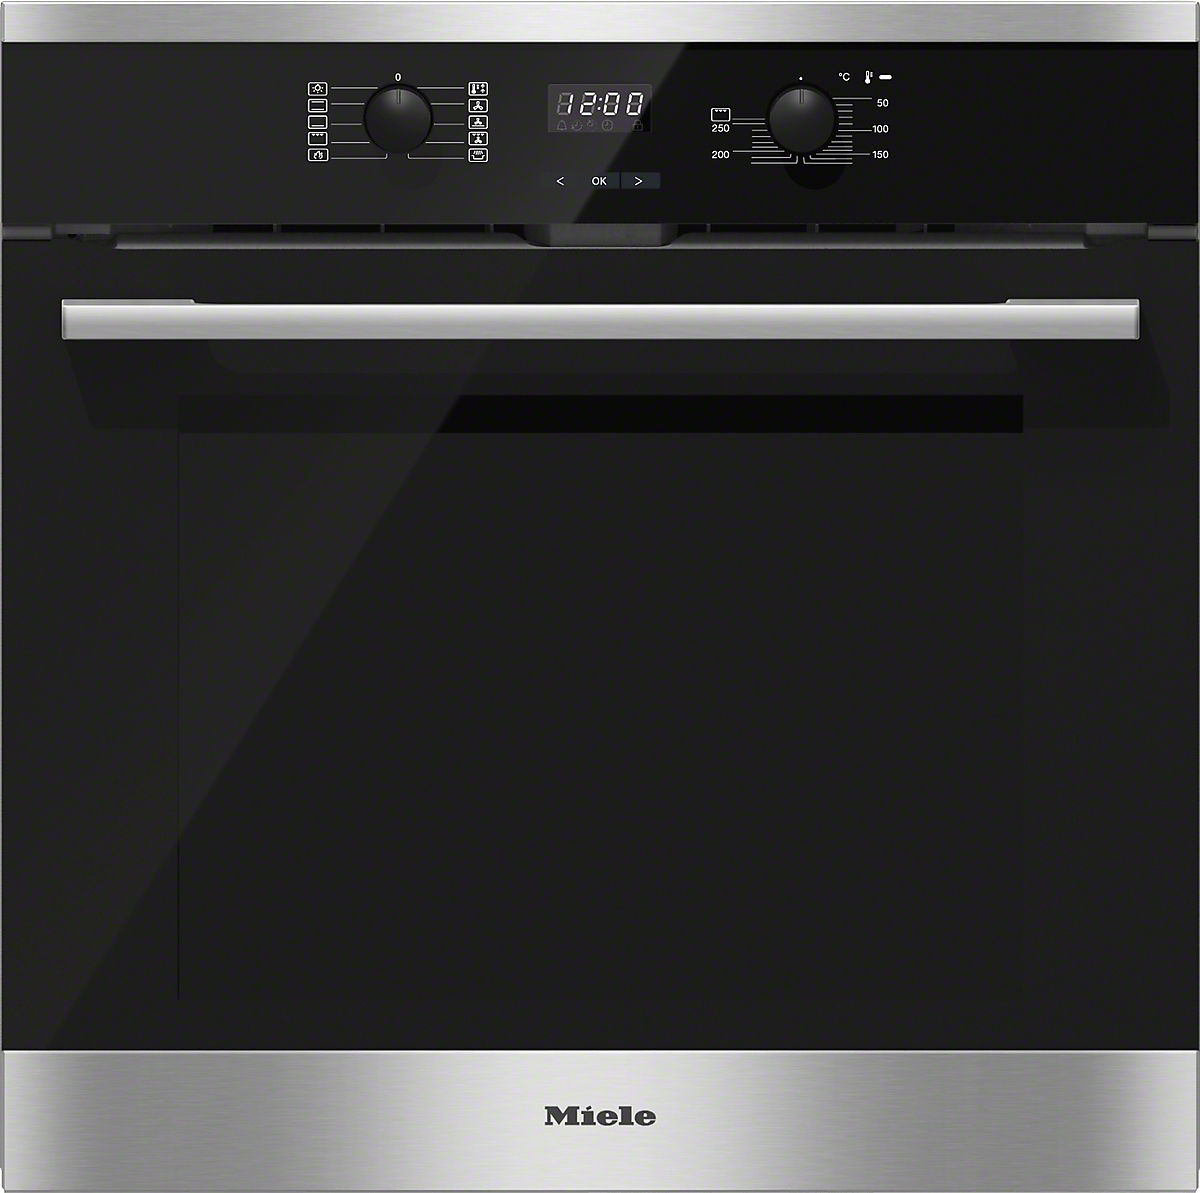 miele einbau backofen h2561 bp edelstahl cleansteel vs elektro. Black Bedroom Furniture Sets. Home Design Ideas